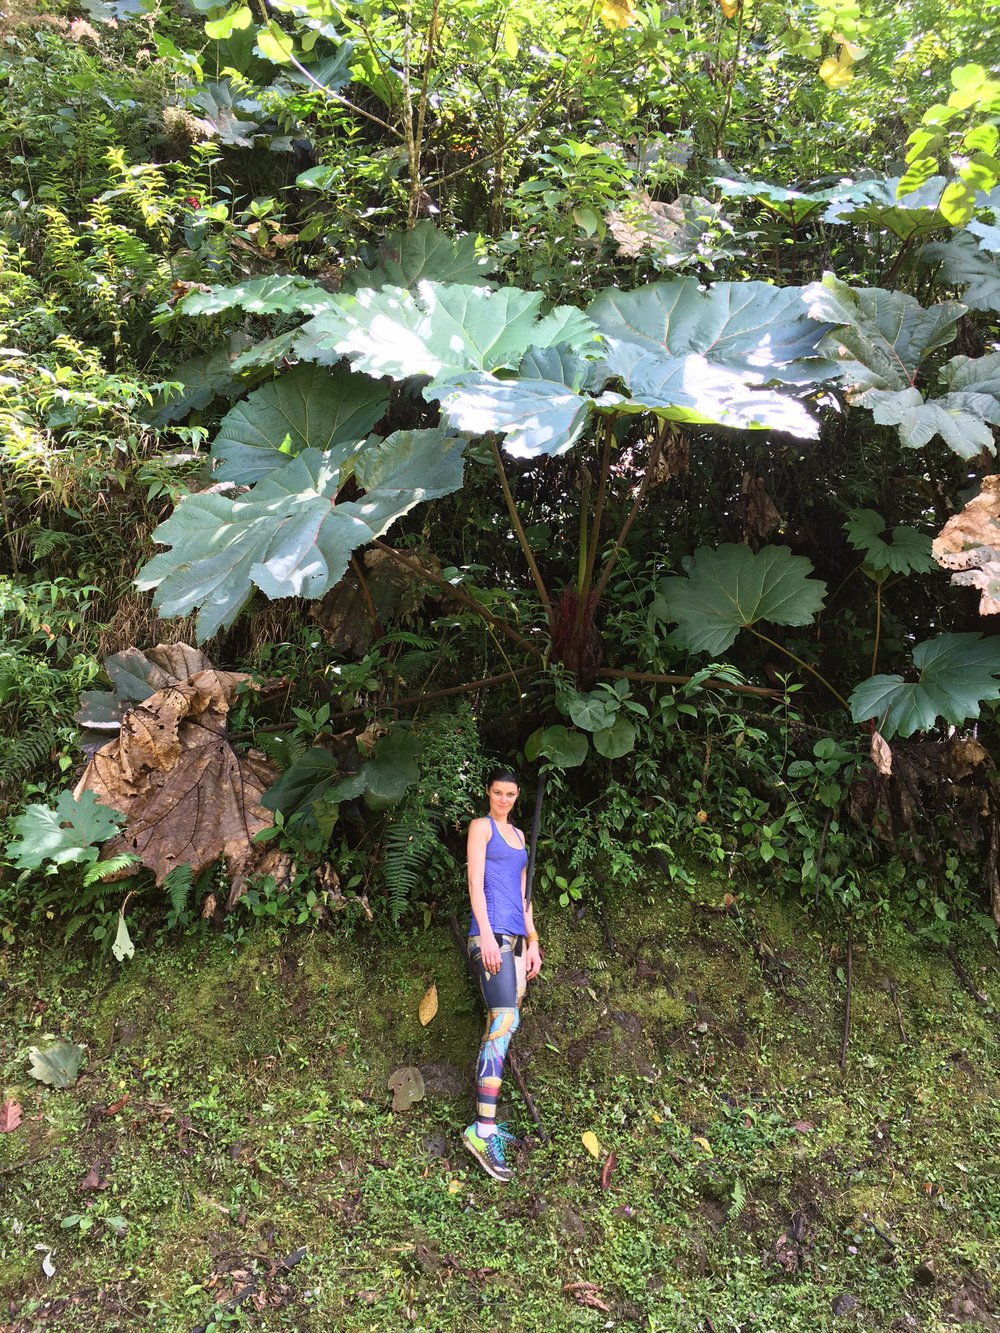 My parents grew rhubarb in our backyard, and as a kid, I'd love pulling up the bitter stalks, noshing on them raw, and hiding myself under the large leaves, which is why it was so cool to see rhubarb's relative, Gunnera insignis, or the aptly named Poor Man's Umbrella in Costa Rica, which is an impressively large broad-leaved plant often found at the edges of rainforests. Though it was the dry season here in Tapantí, the leaves would have served as a perfect natural umbrella from rain or sun!